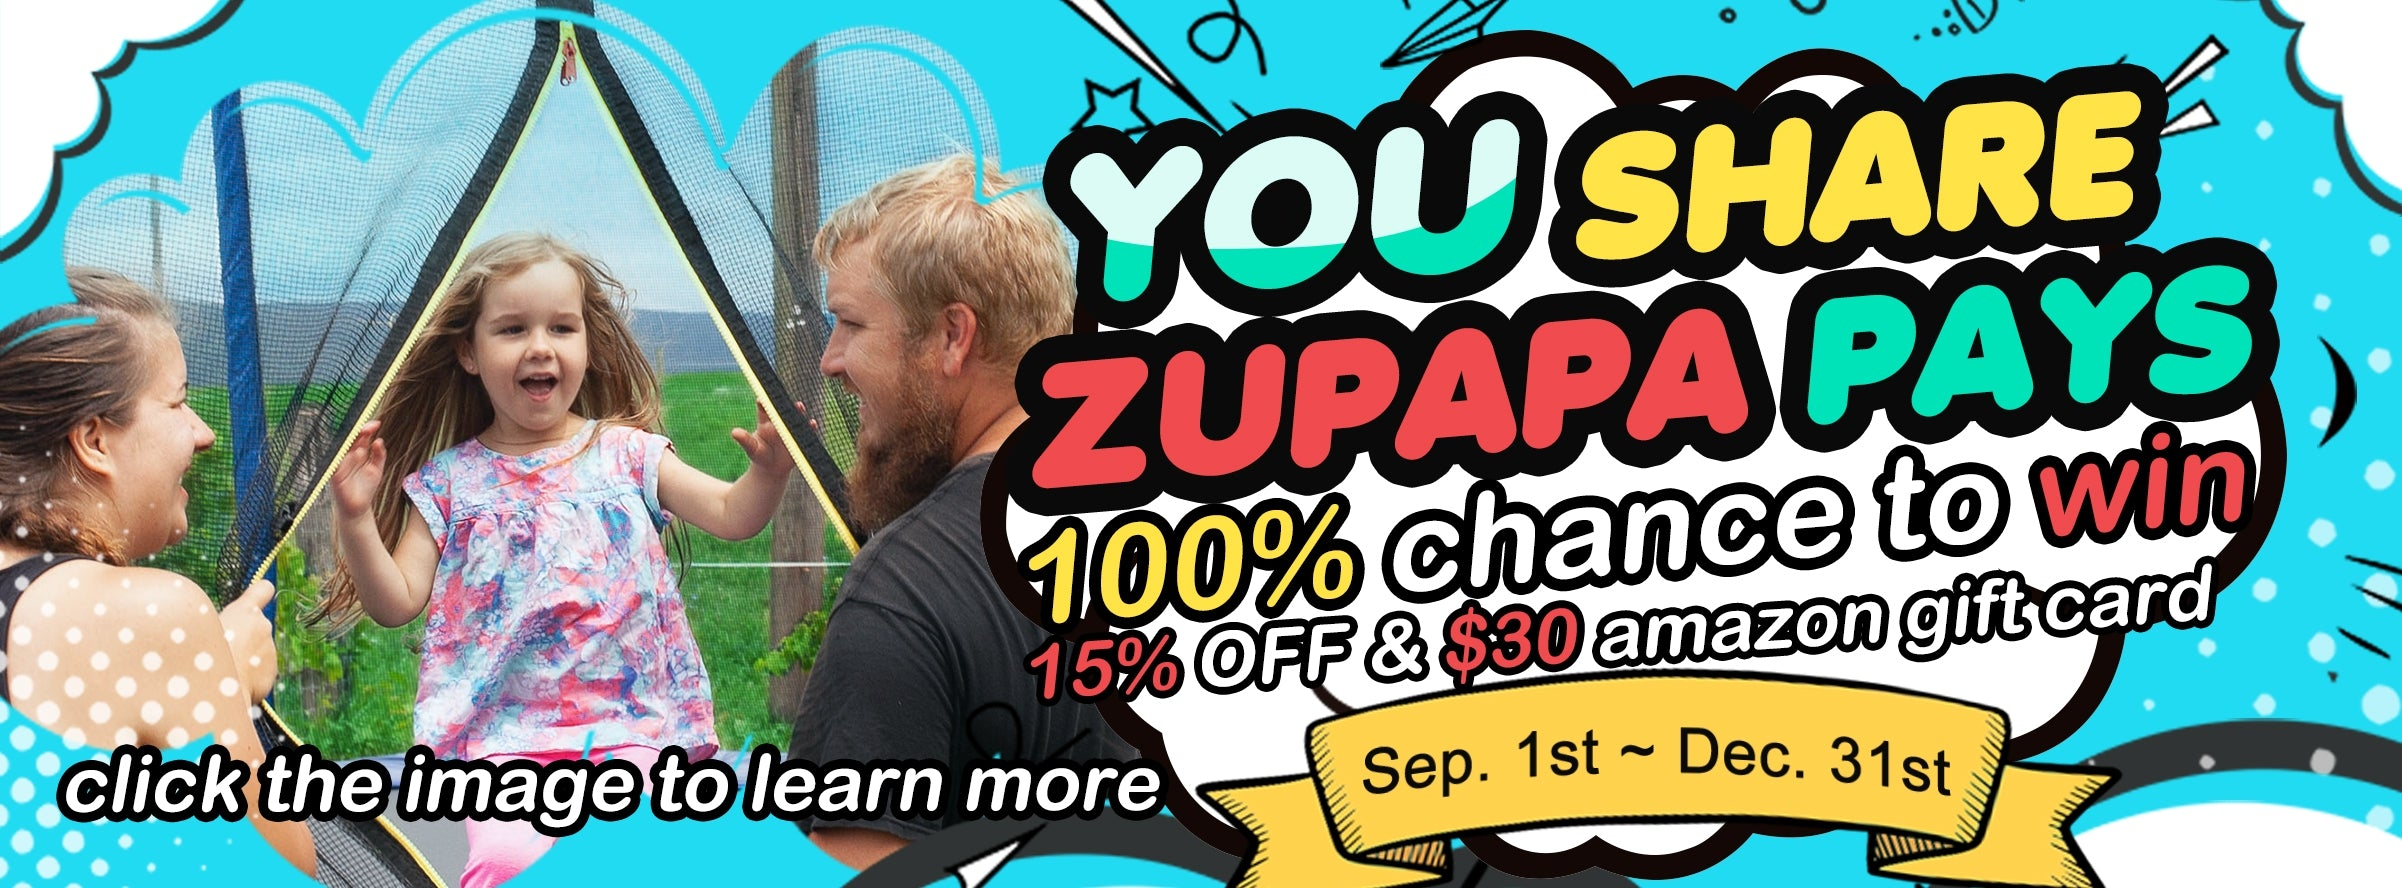 zupapa trampoline giveaway only for customers,  you share zupapa pays